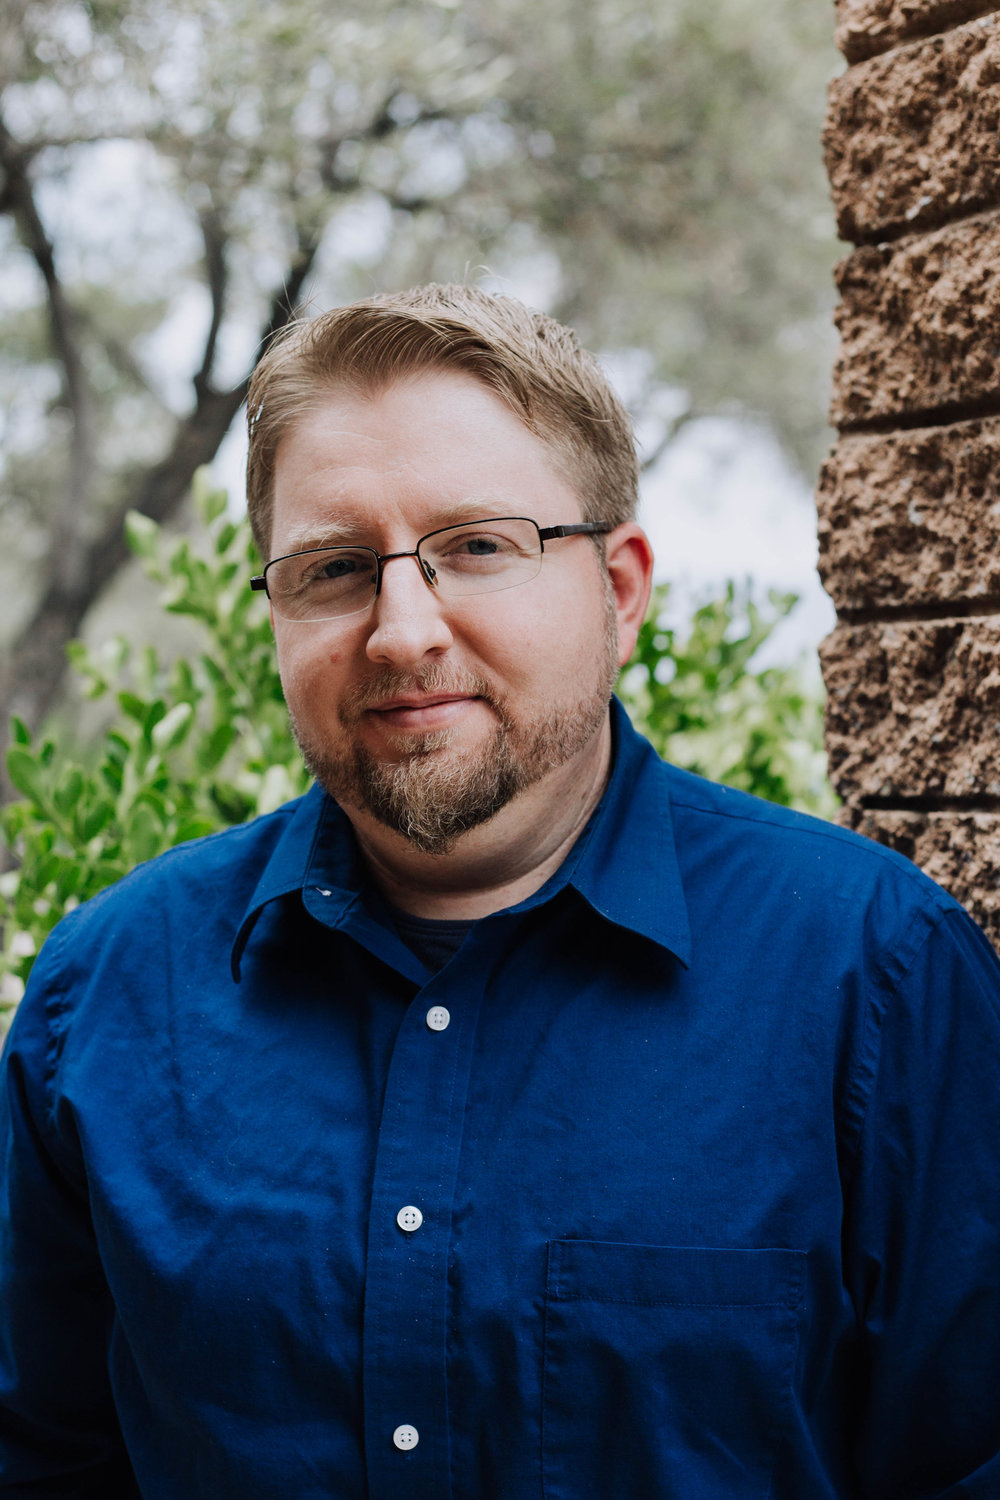 Stephen Posson EA - Stephen Posson has been a Tucson resident since 1998 and graduated from Sabino High School in 2000 and the University of Arizona in 2007. Stephen has been involved in tax preparation and accounting with Steven Phillips and Associates since 2008 and in November 2012 Stephen passed the IRS exams and became an Enrolled Agent.Email: steveposson@stevephillipscpa.com